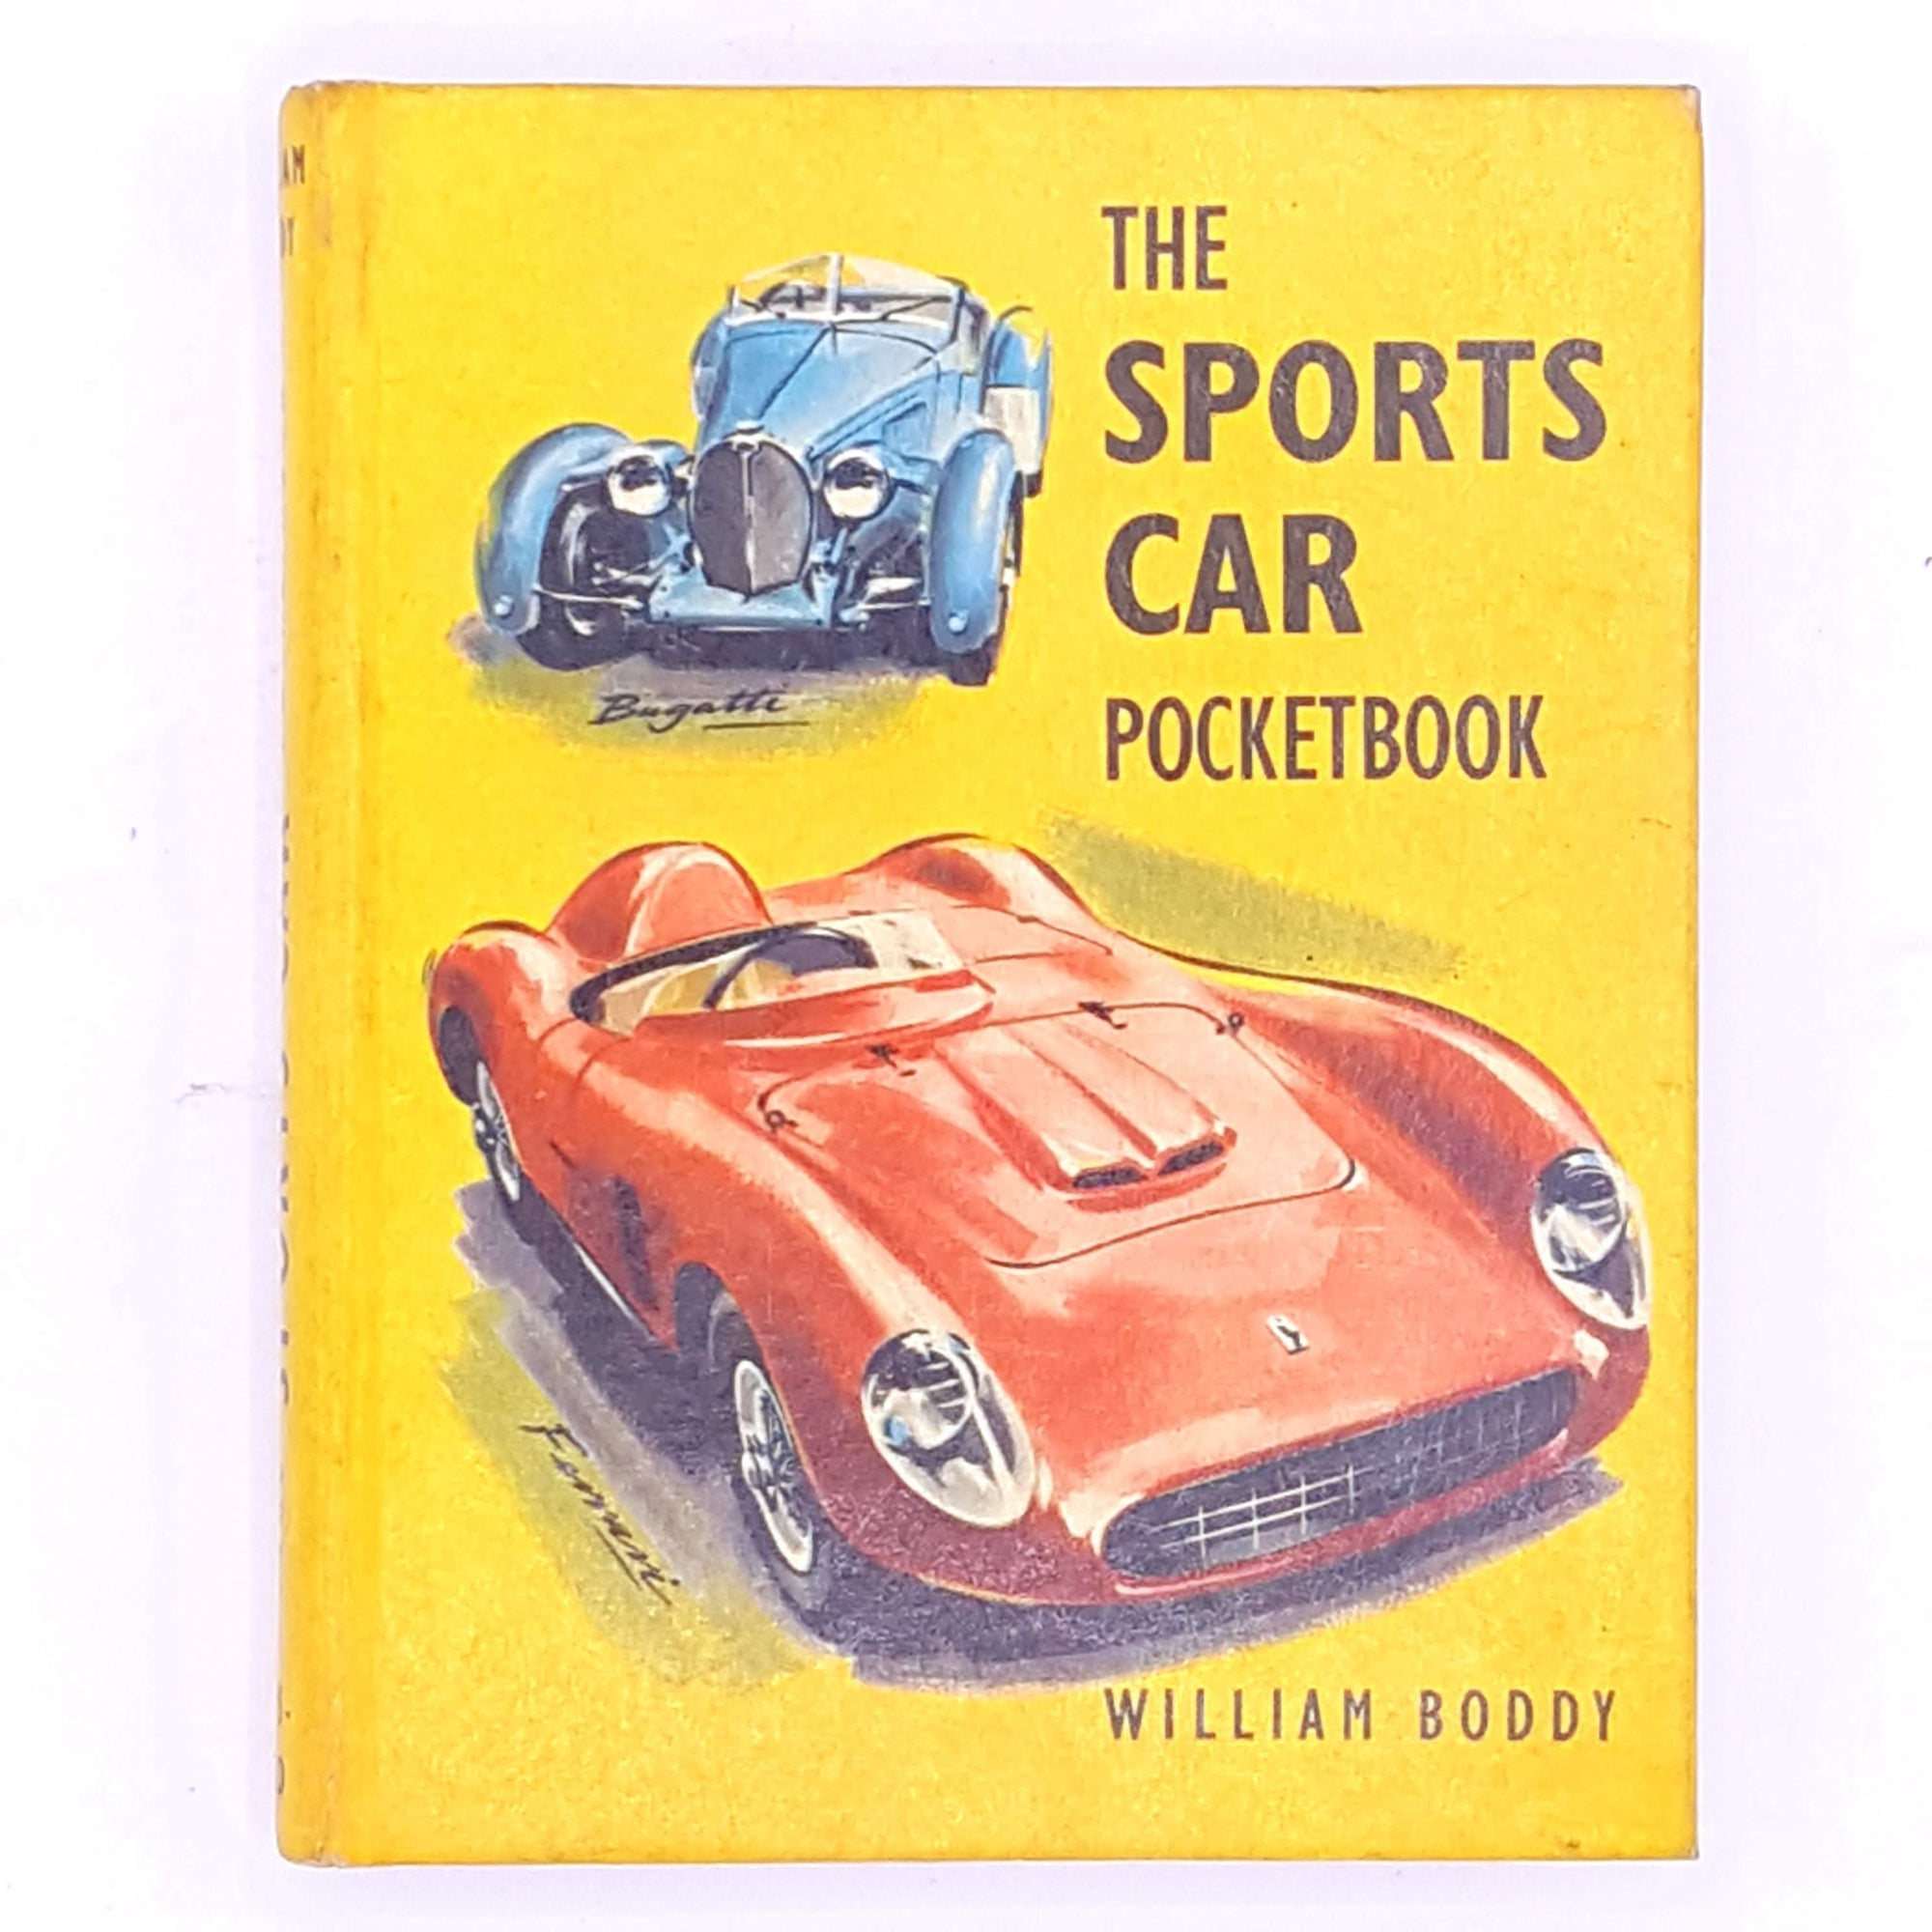 Christmas Sports Car.The Sports Car Pocket Book By William Boddy 1963